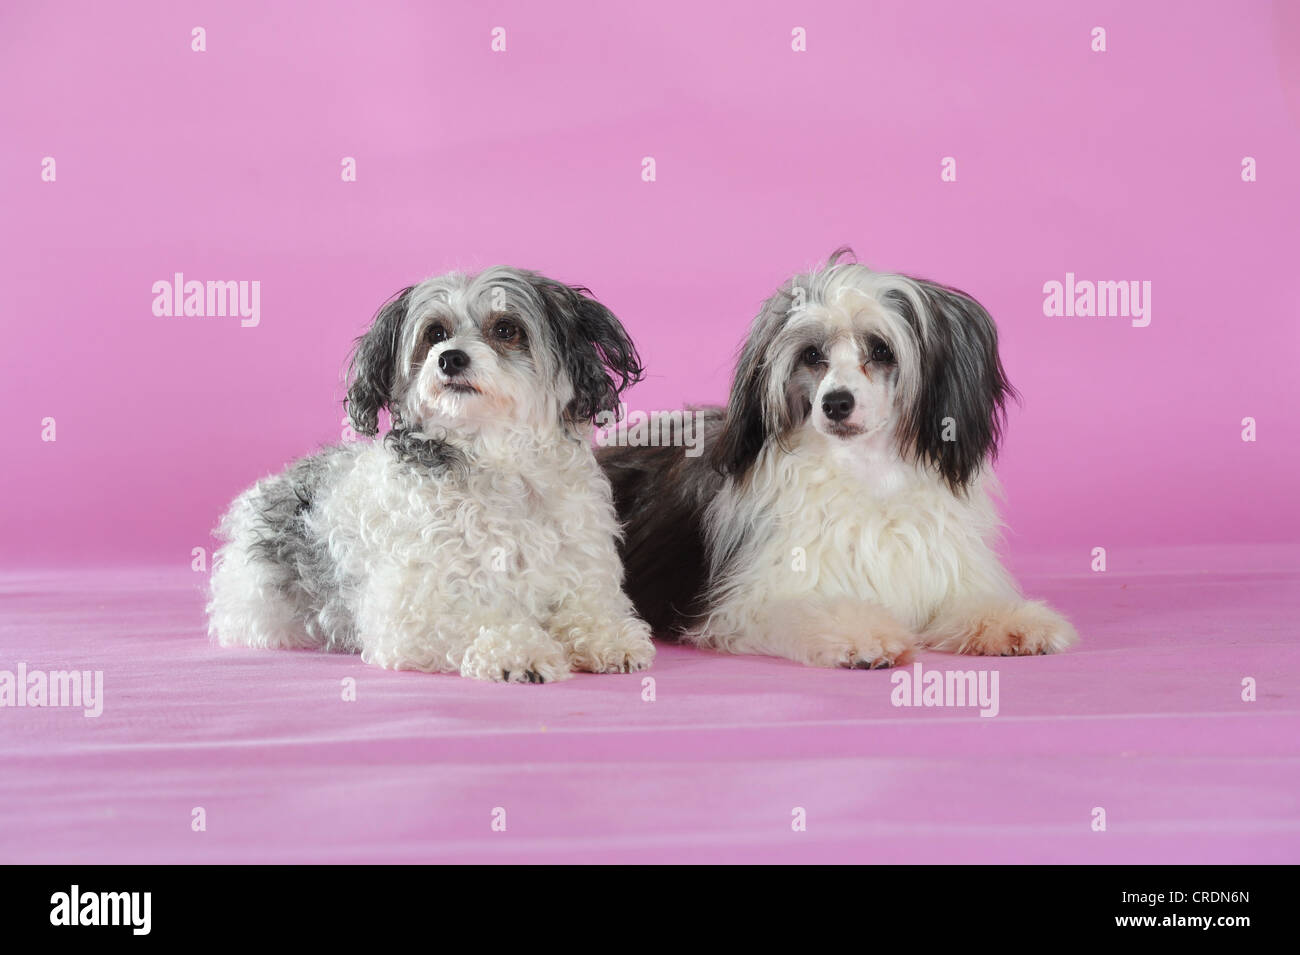 Two Chinese Crested Hairless Dogs, Powderpuffs, lying - Stock Image